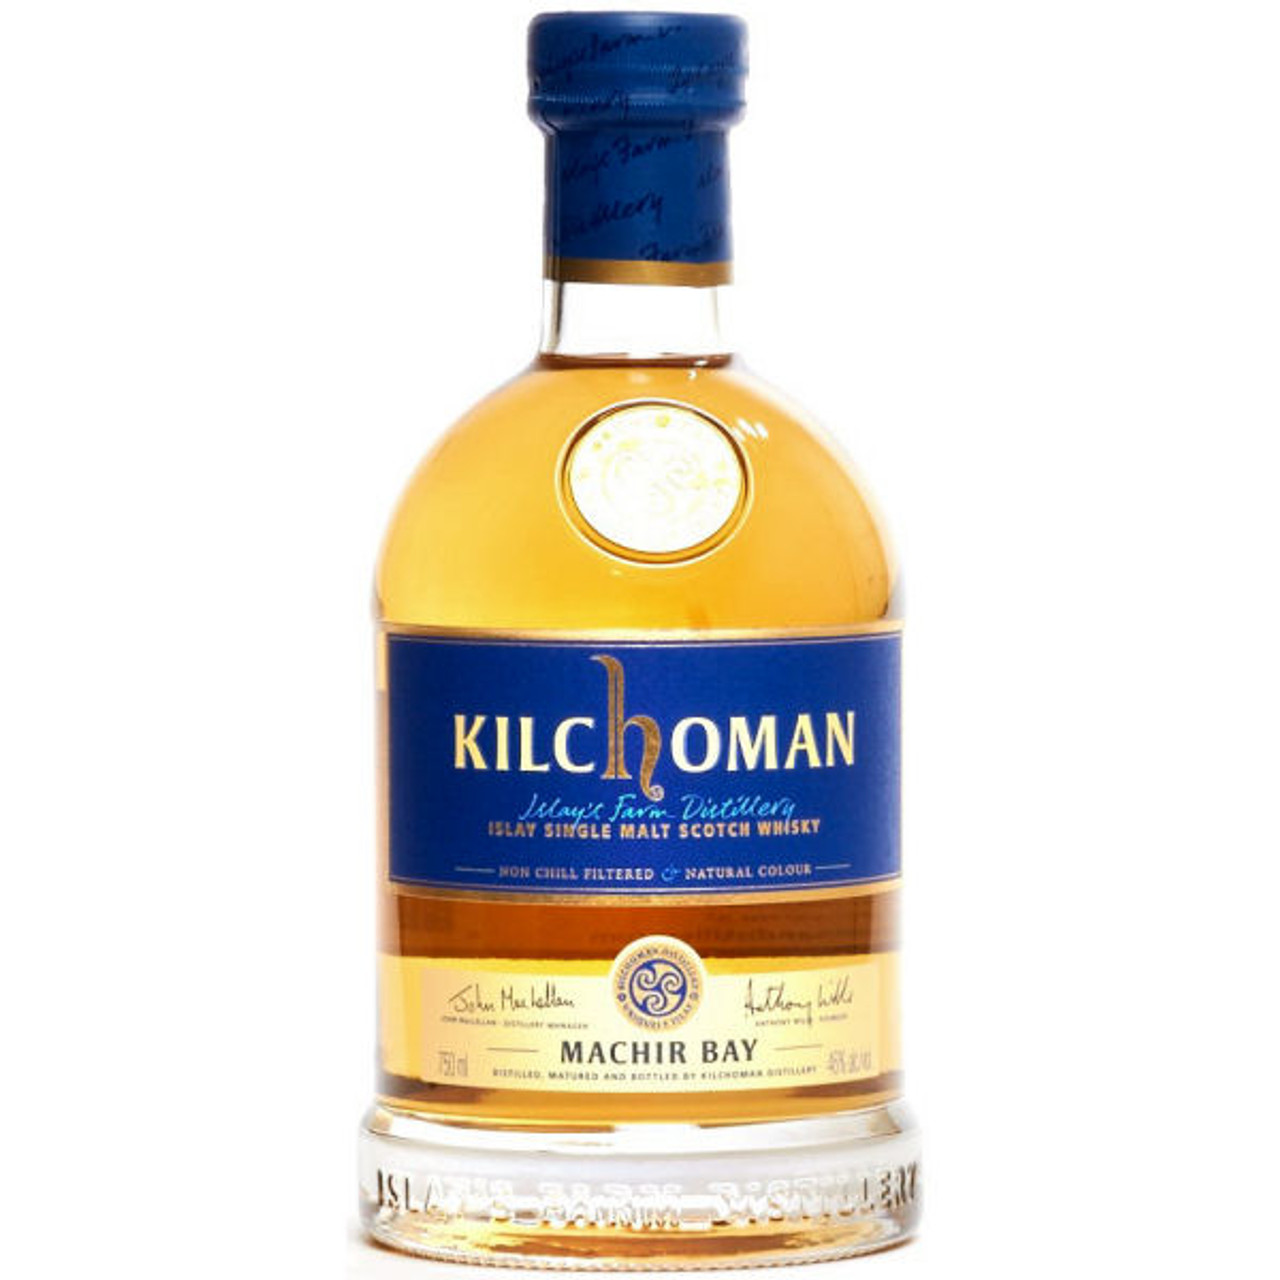 Kilchoman Machir Bay Single Malt Scotch 750ml